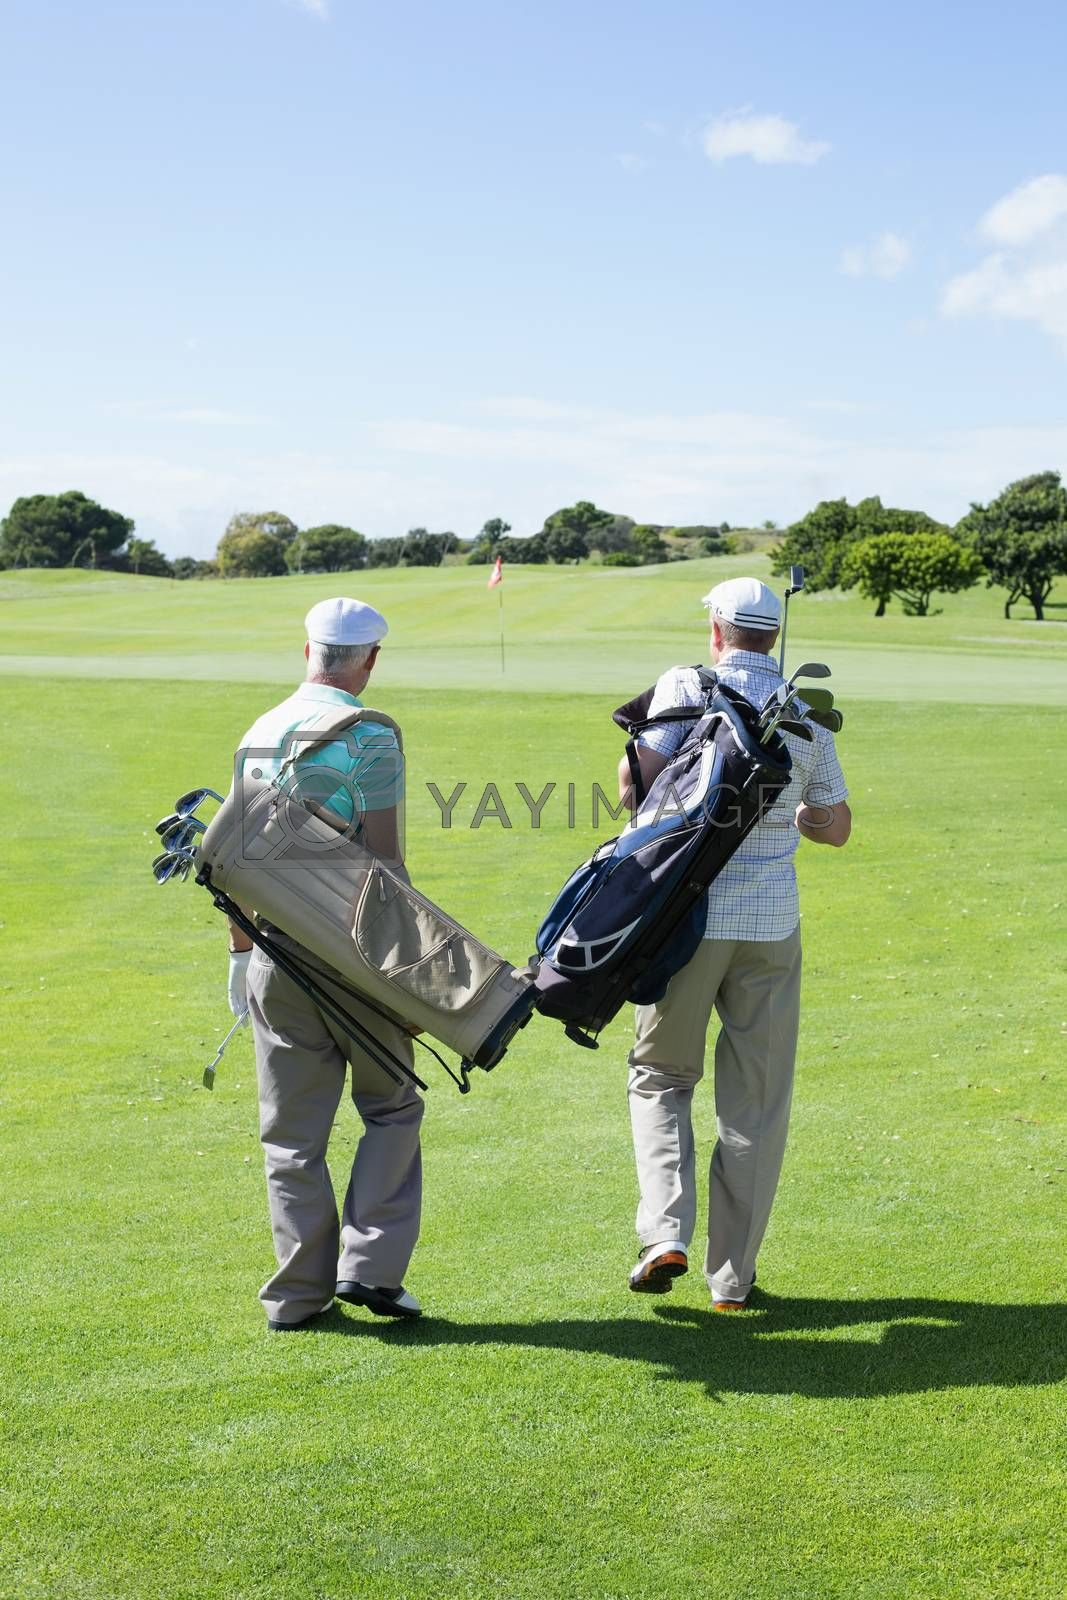 Golfer friends walking and holding their golf bags on a sunny day at the golf course